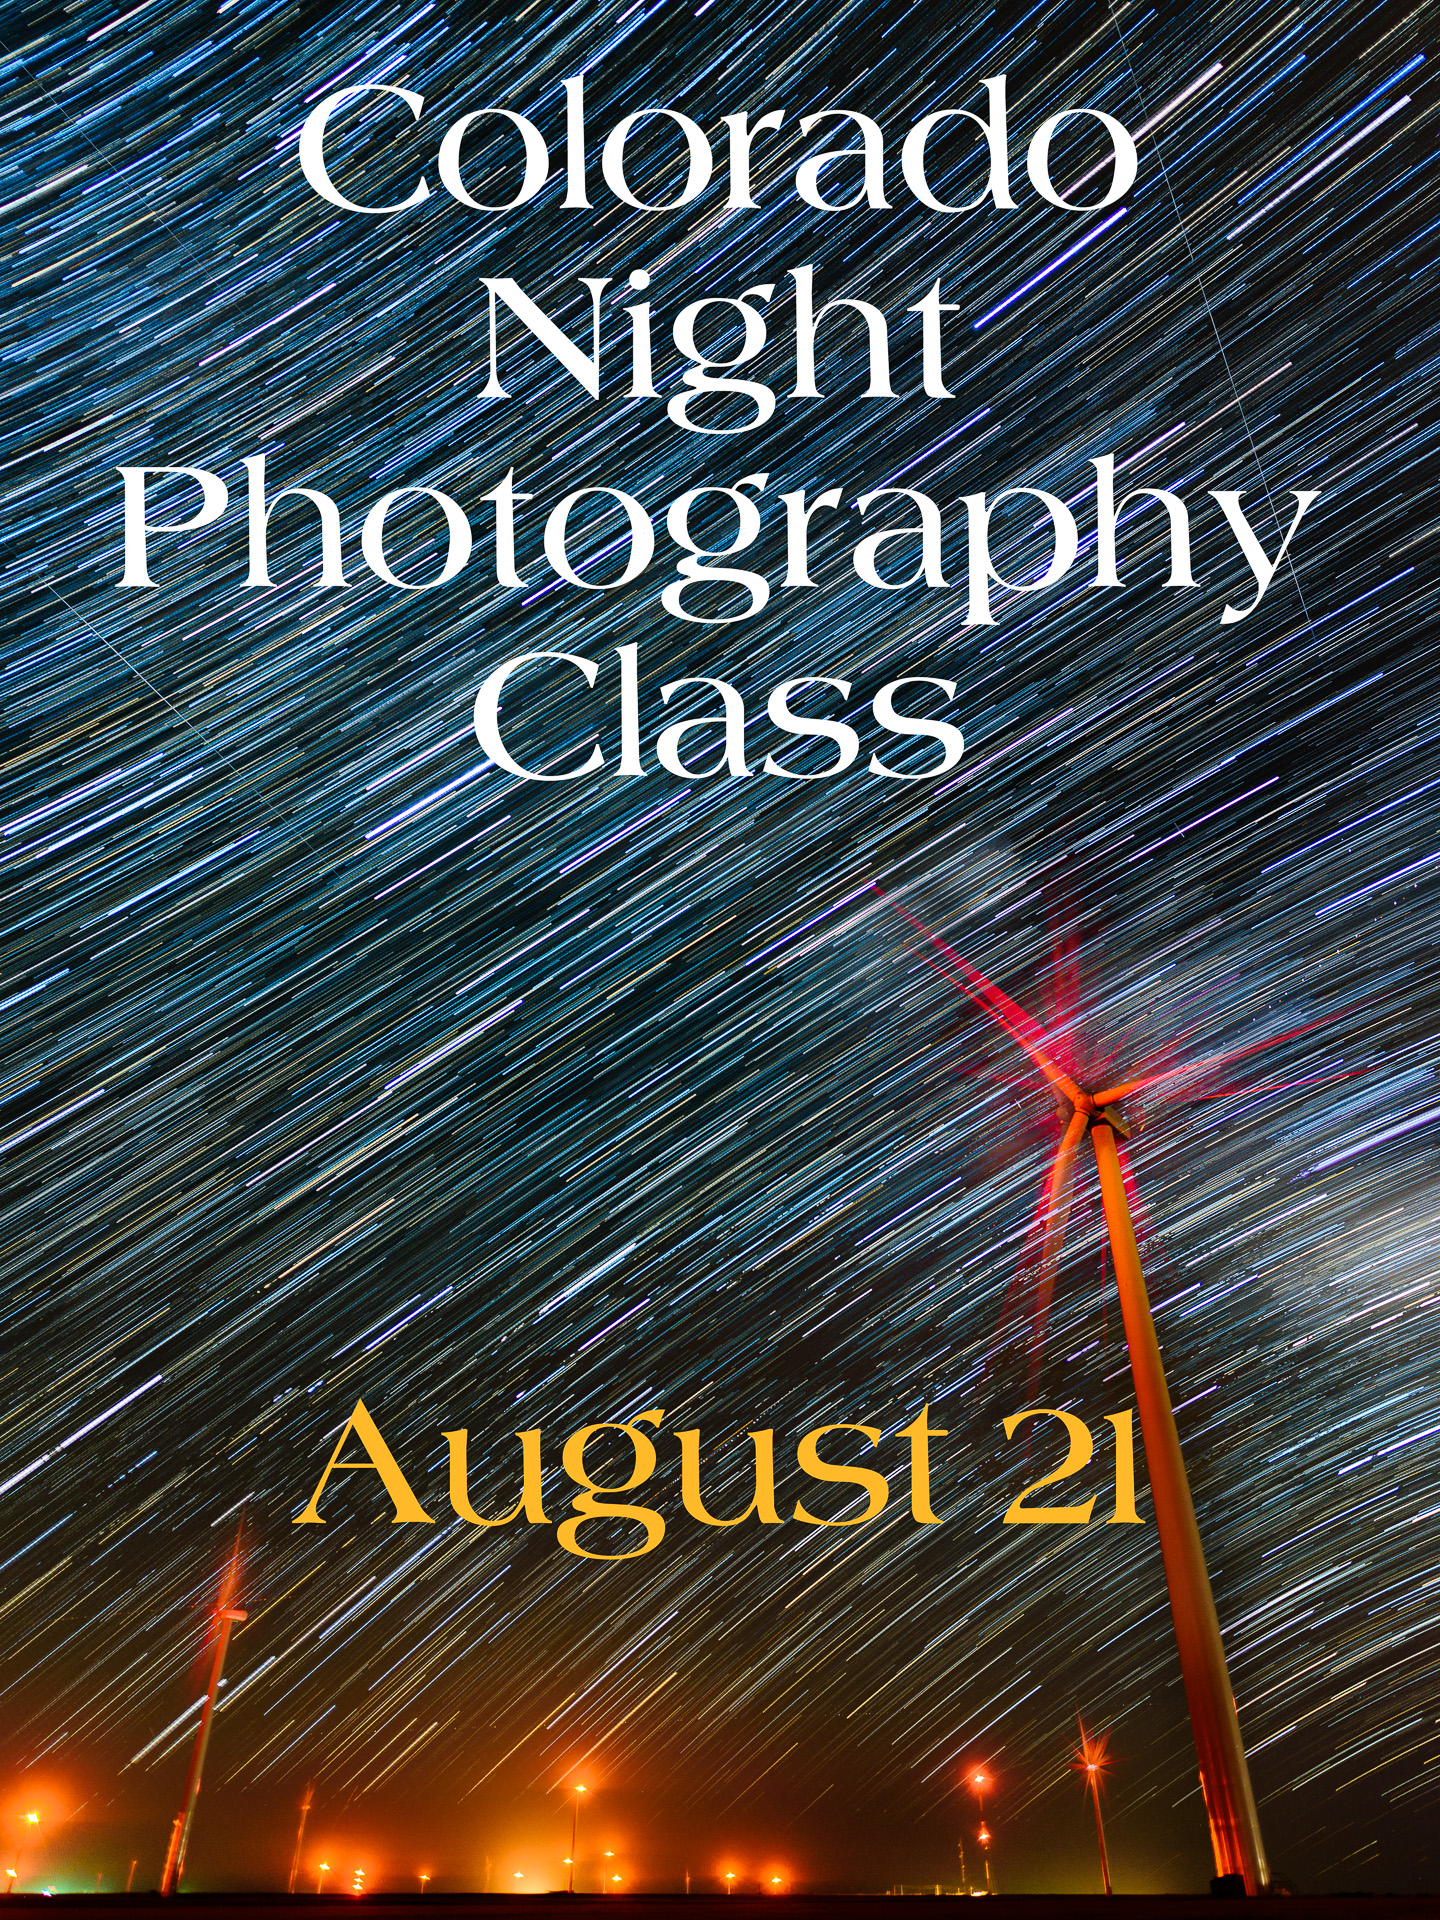 Night Sky Photography Class in Colorado, August 21st.